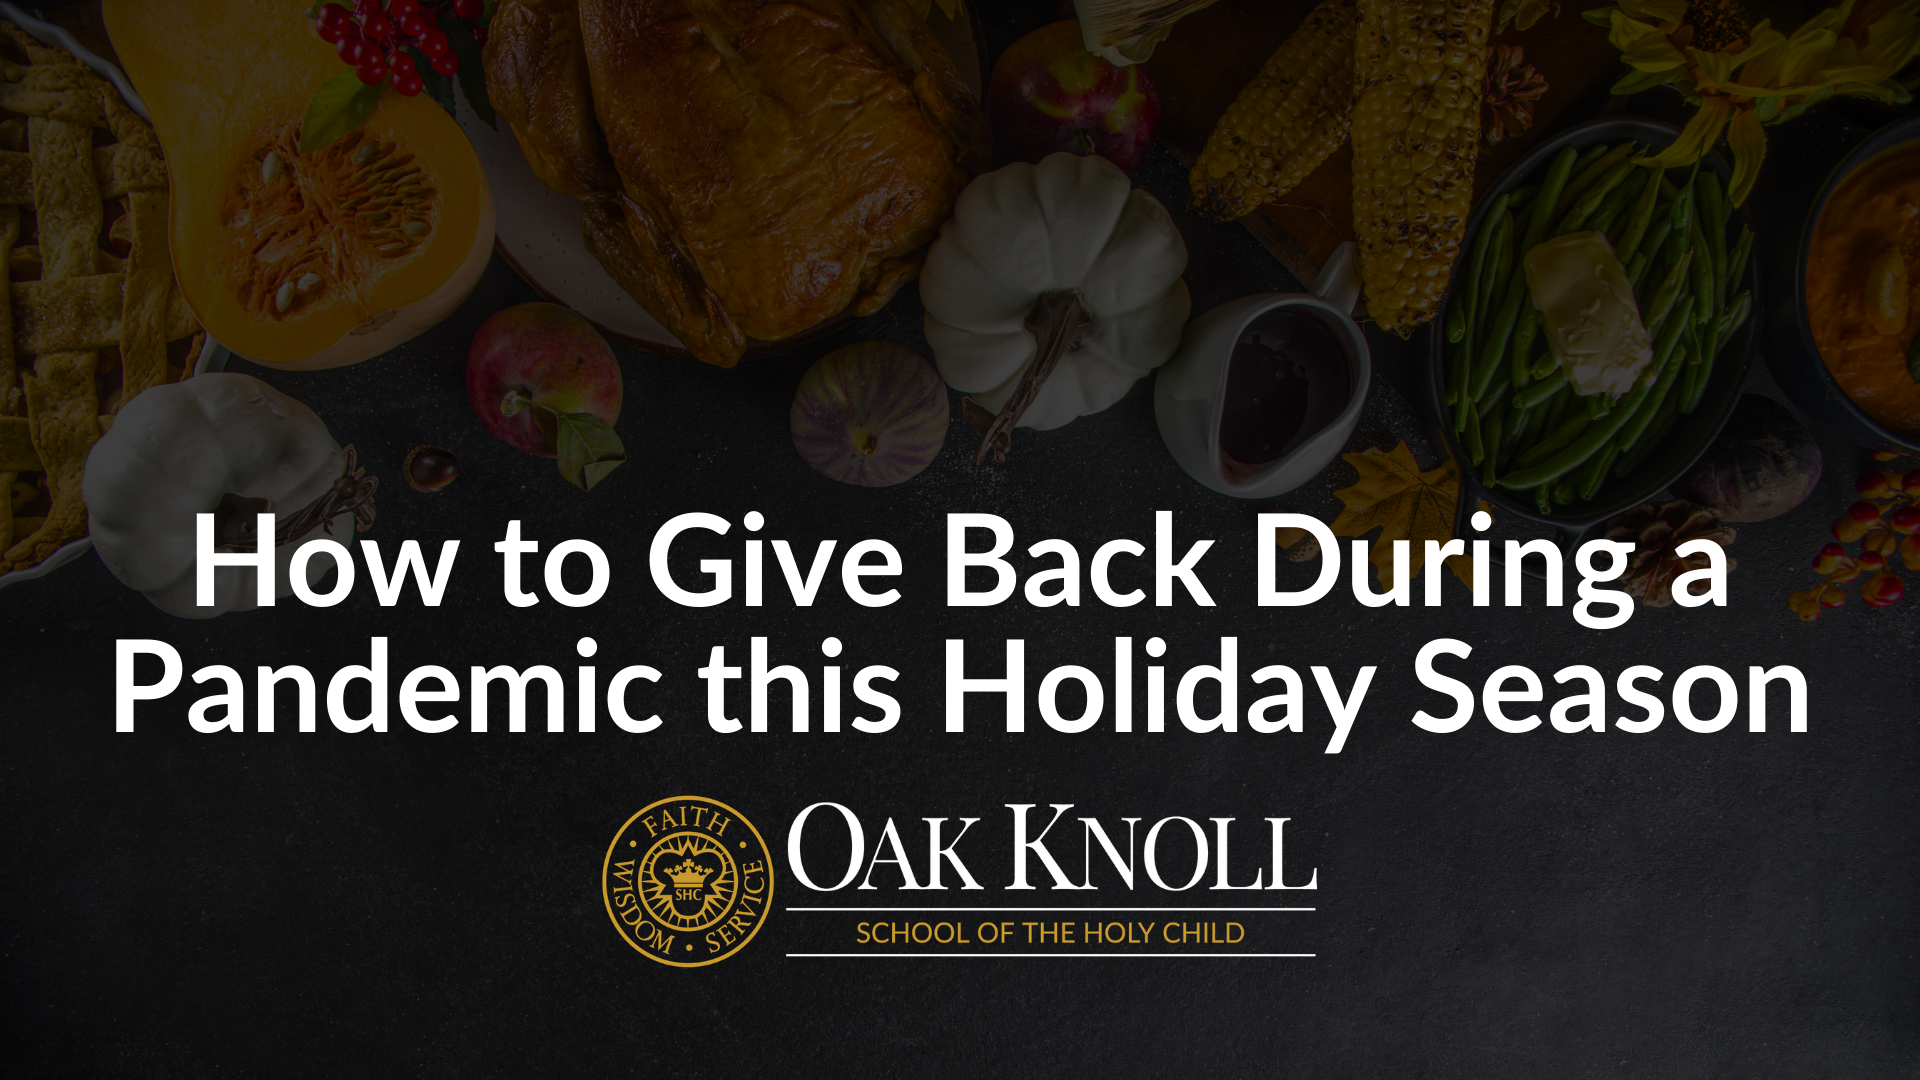 How to Give Back During a Pandemic this Holiday Season